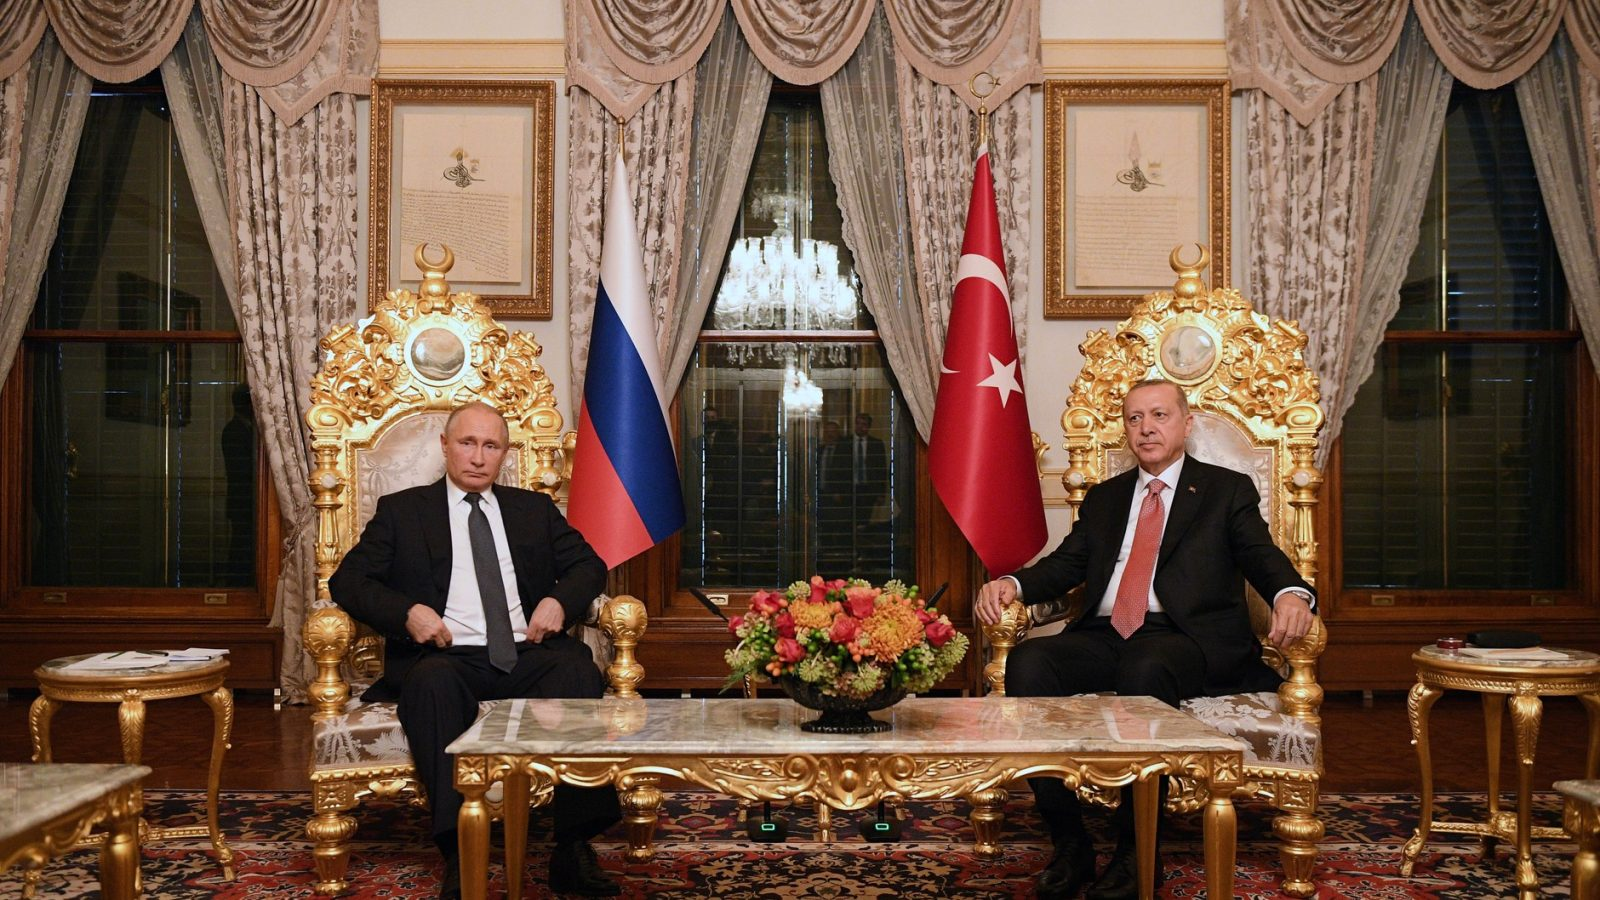 Russian President Vladimir Putin and Turkish President Recep Tayyip Erdoğan sit in a luxuriously decorated room in Istanbul